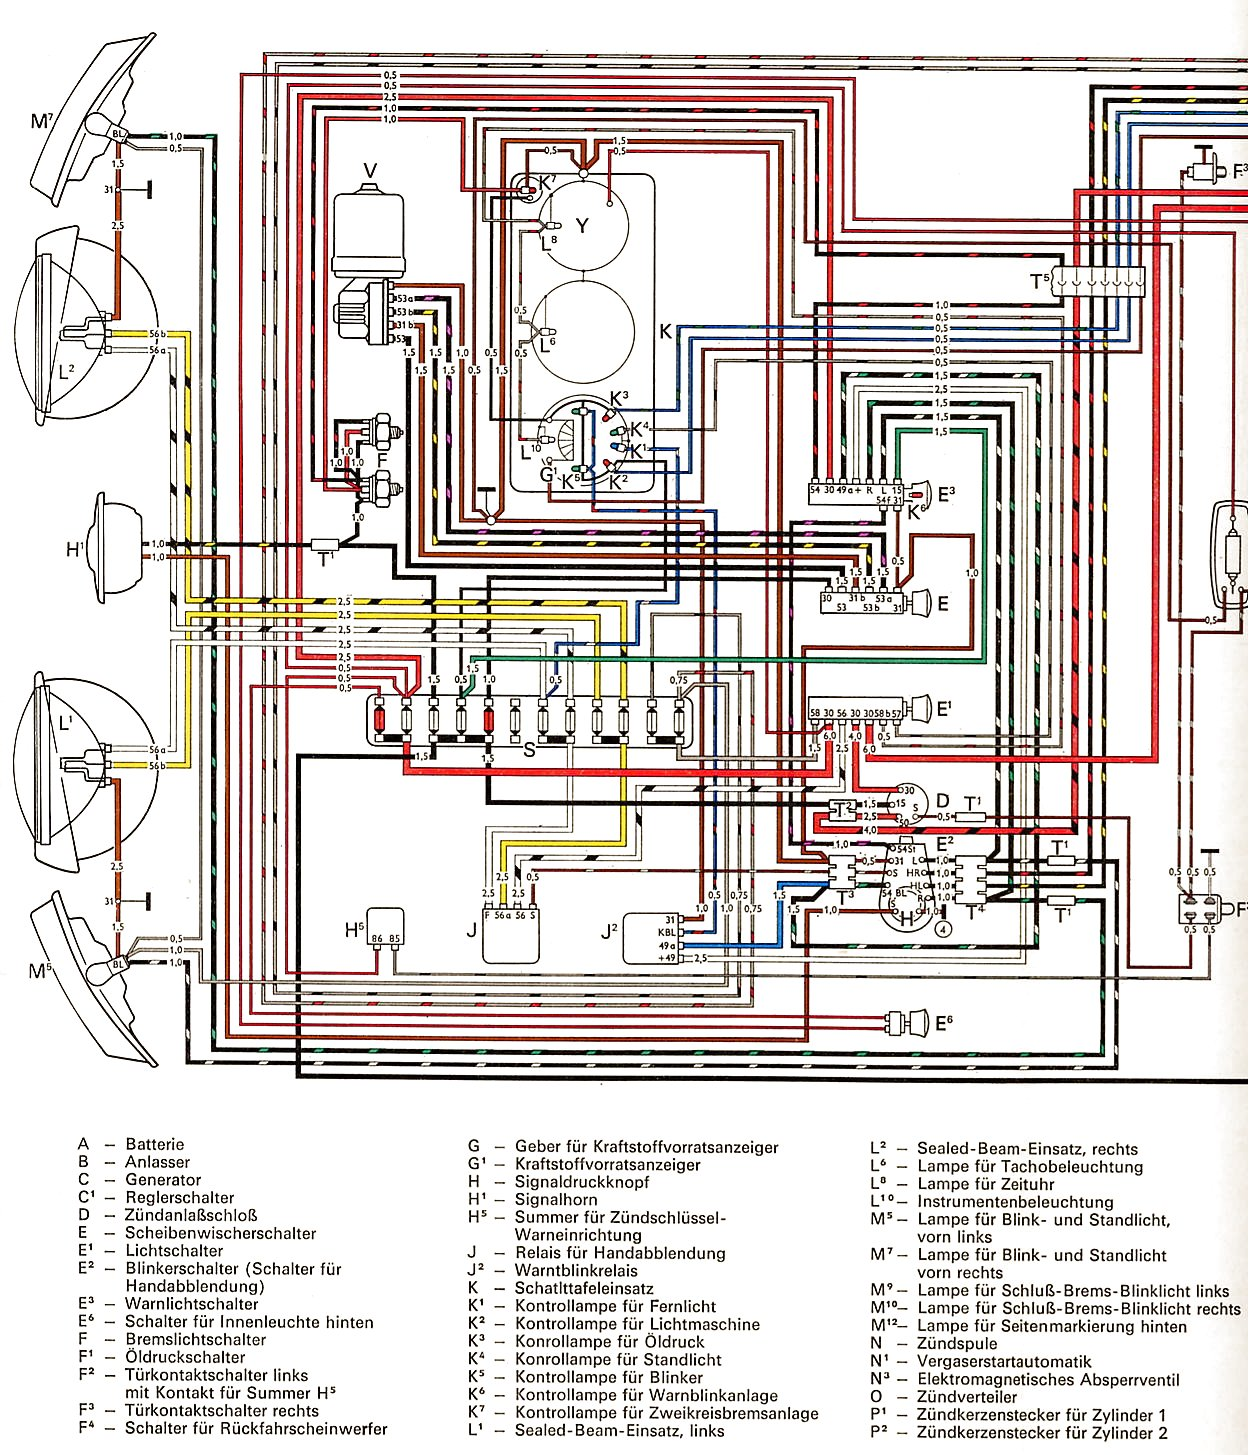 69 vw bug wiring diagram private sharing about wiring diagram u2022 rh caraccessoriesandsoftware co uk